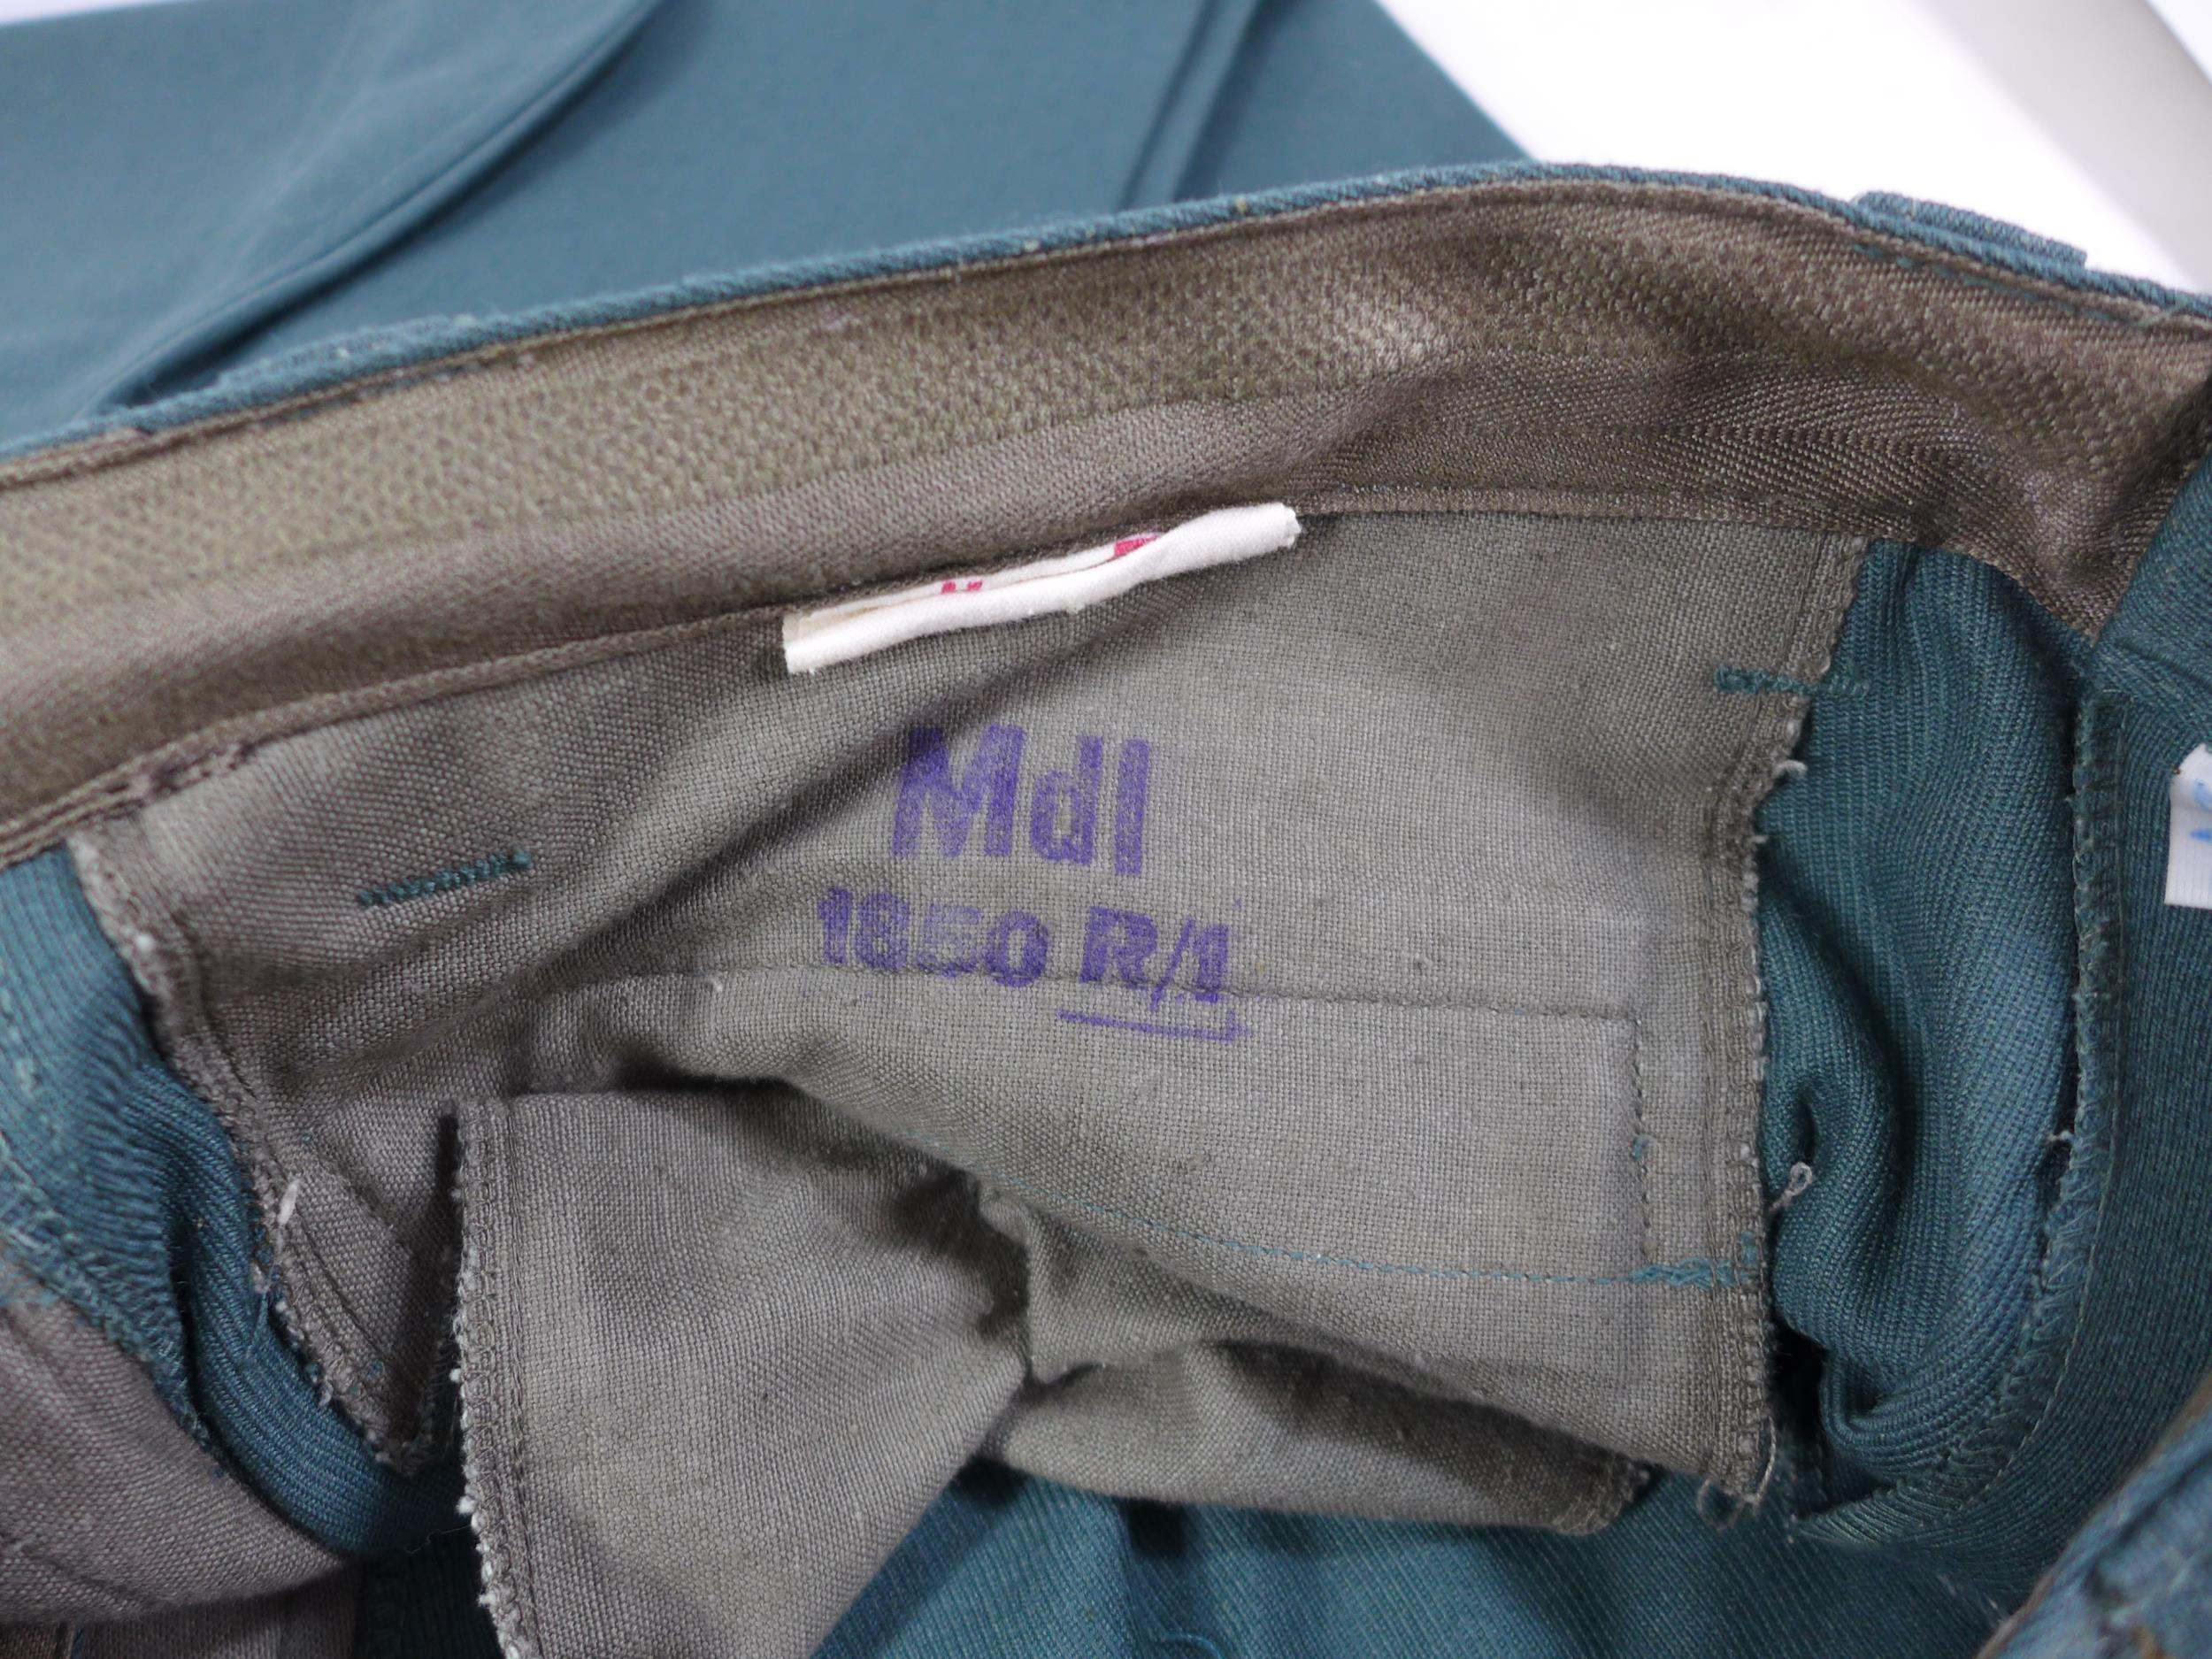 A POST WWII UNIFORM, PROBABLY GERMAN COMPRISING OF A JACKET AND TROUSERS - Image 6 of 6